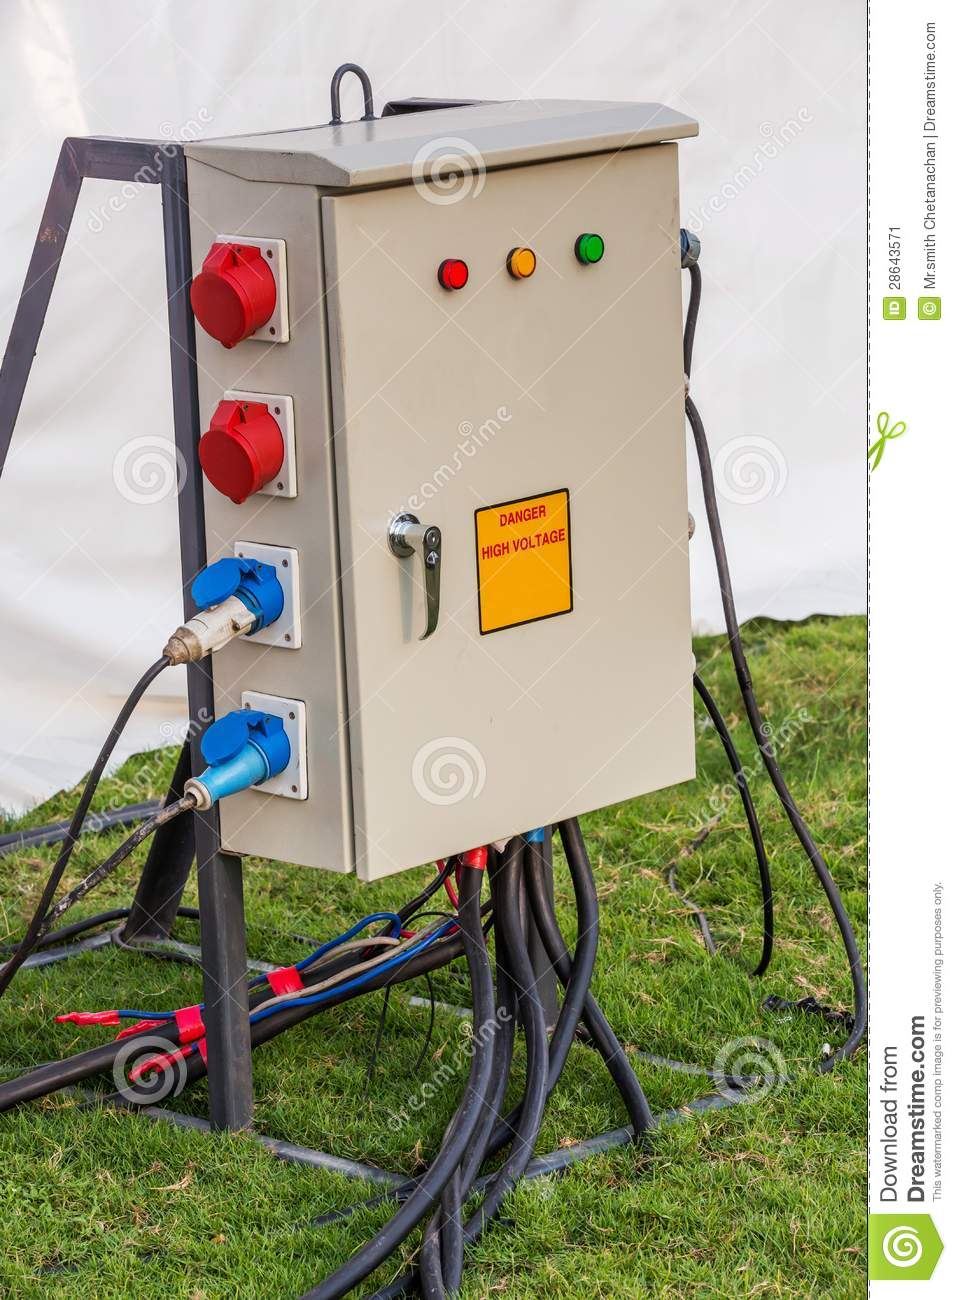 Industrial Distribution Socket Box Stock Image Of Wiring A Plug From Another Free Download Preview